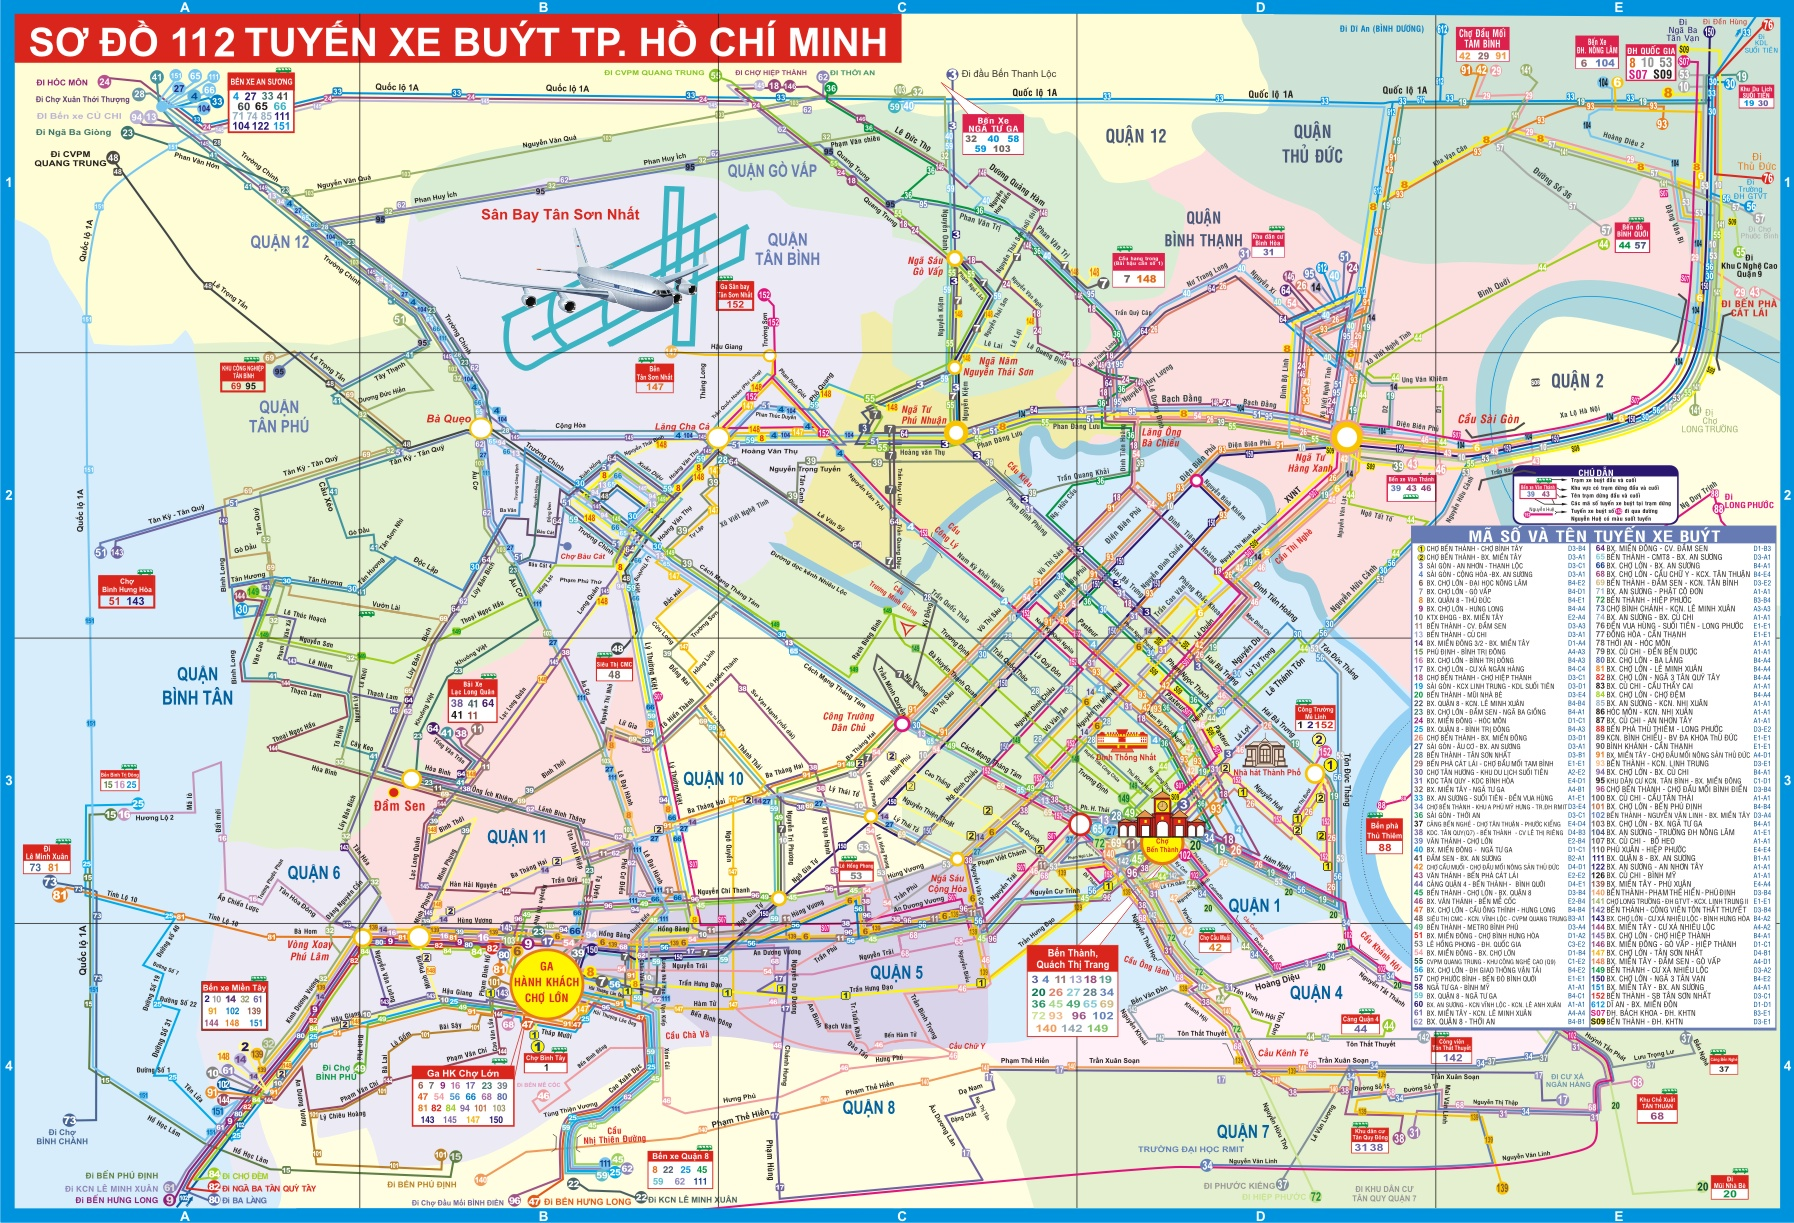 sodo09-09 Saigon Bus Route Map on qm5 bus map, bus models, bus template, b47 bus map, b13 bus map, bus routes in maui hawaii, bus schedule, bus routes logo, bus travel to georgia, bus routes in central london, bus routes oahu hawaii, m35 bus map, bus stop location map, bus routes colorado springs co, bus routes los angeles, bus field trip, bus seat map, bus routes in plymouth england, bus san francisco 1960,